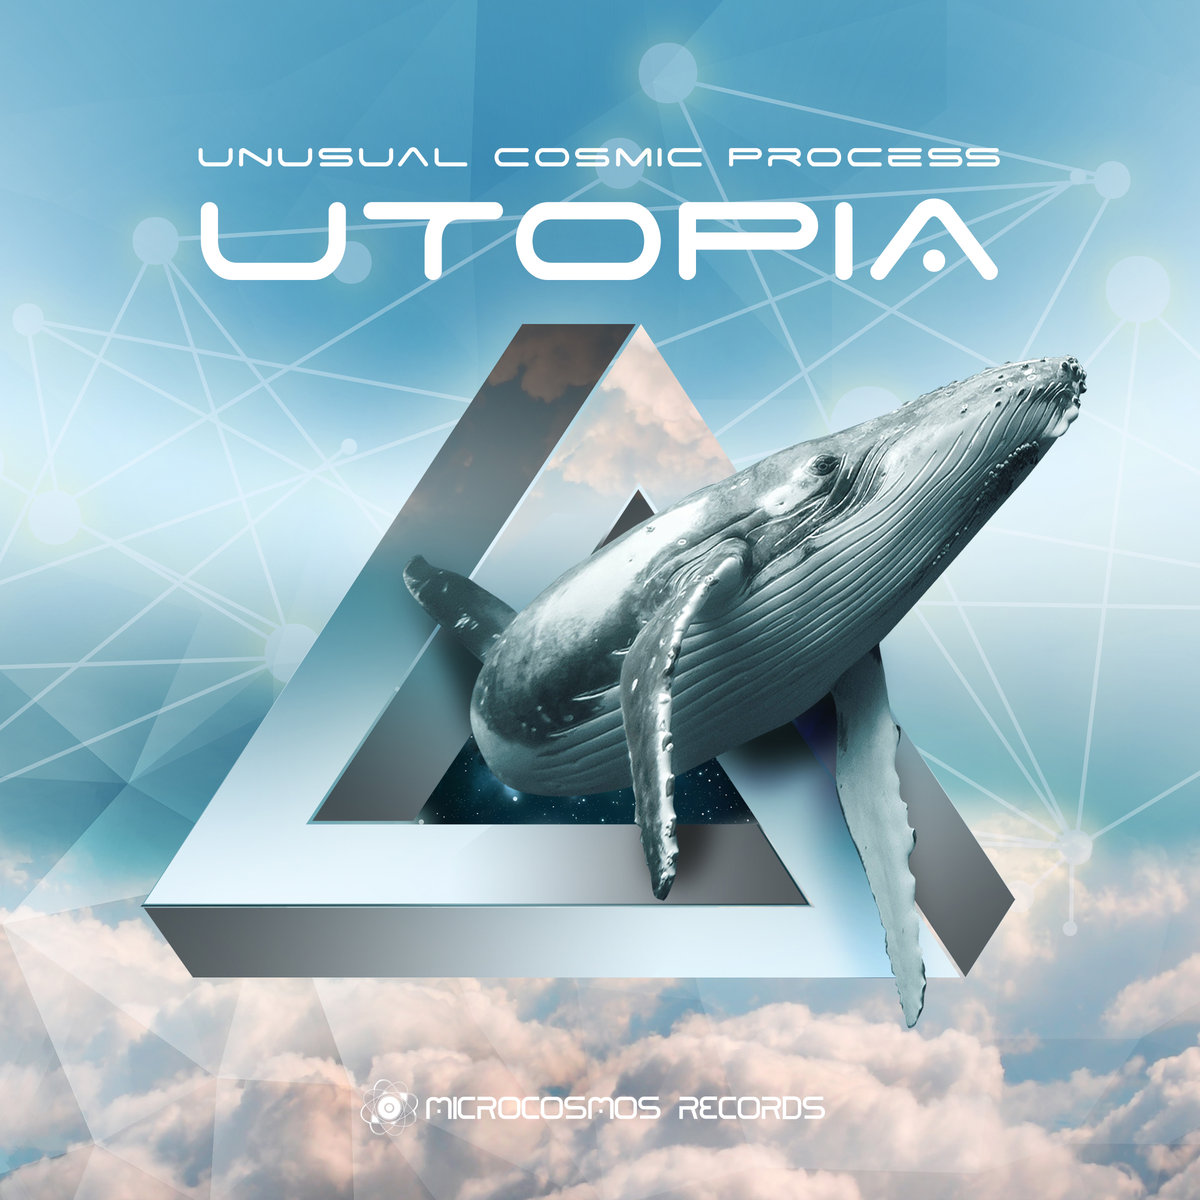 Zymosis - Zeta Being (Unusual Cosmic Process Remix) @ 'Utopia' album (ambient, chill-out)